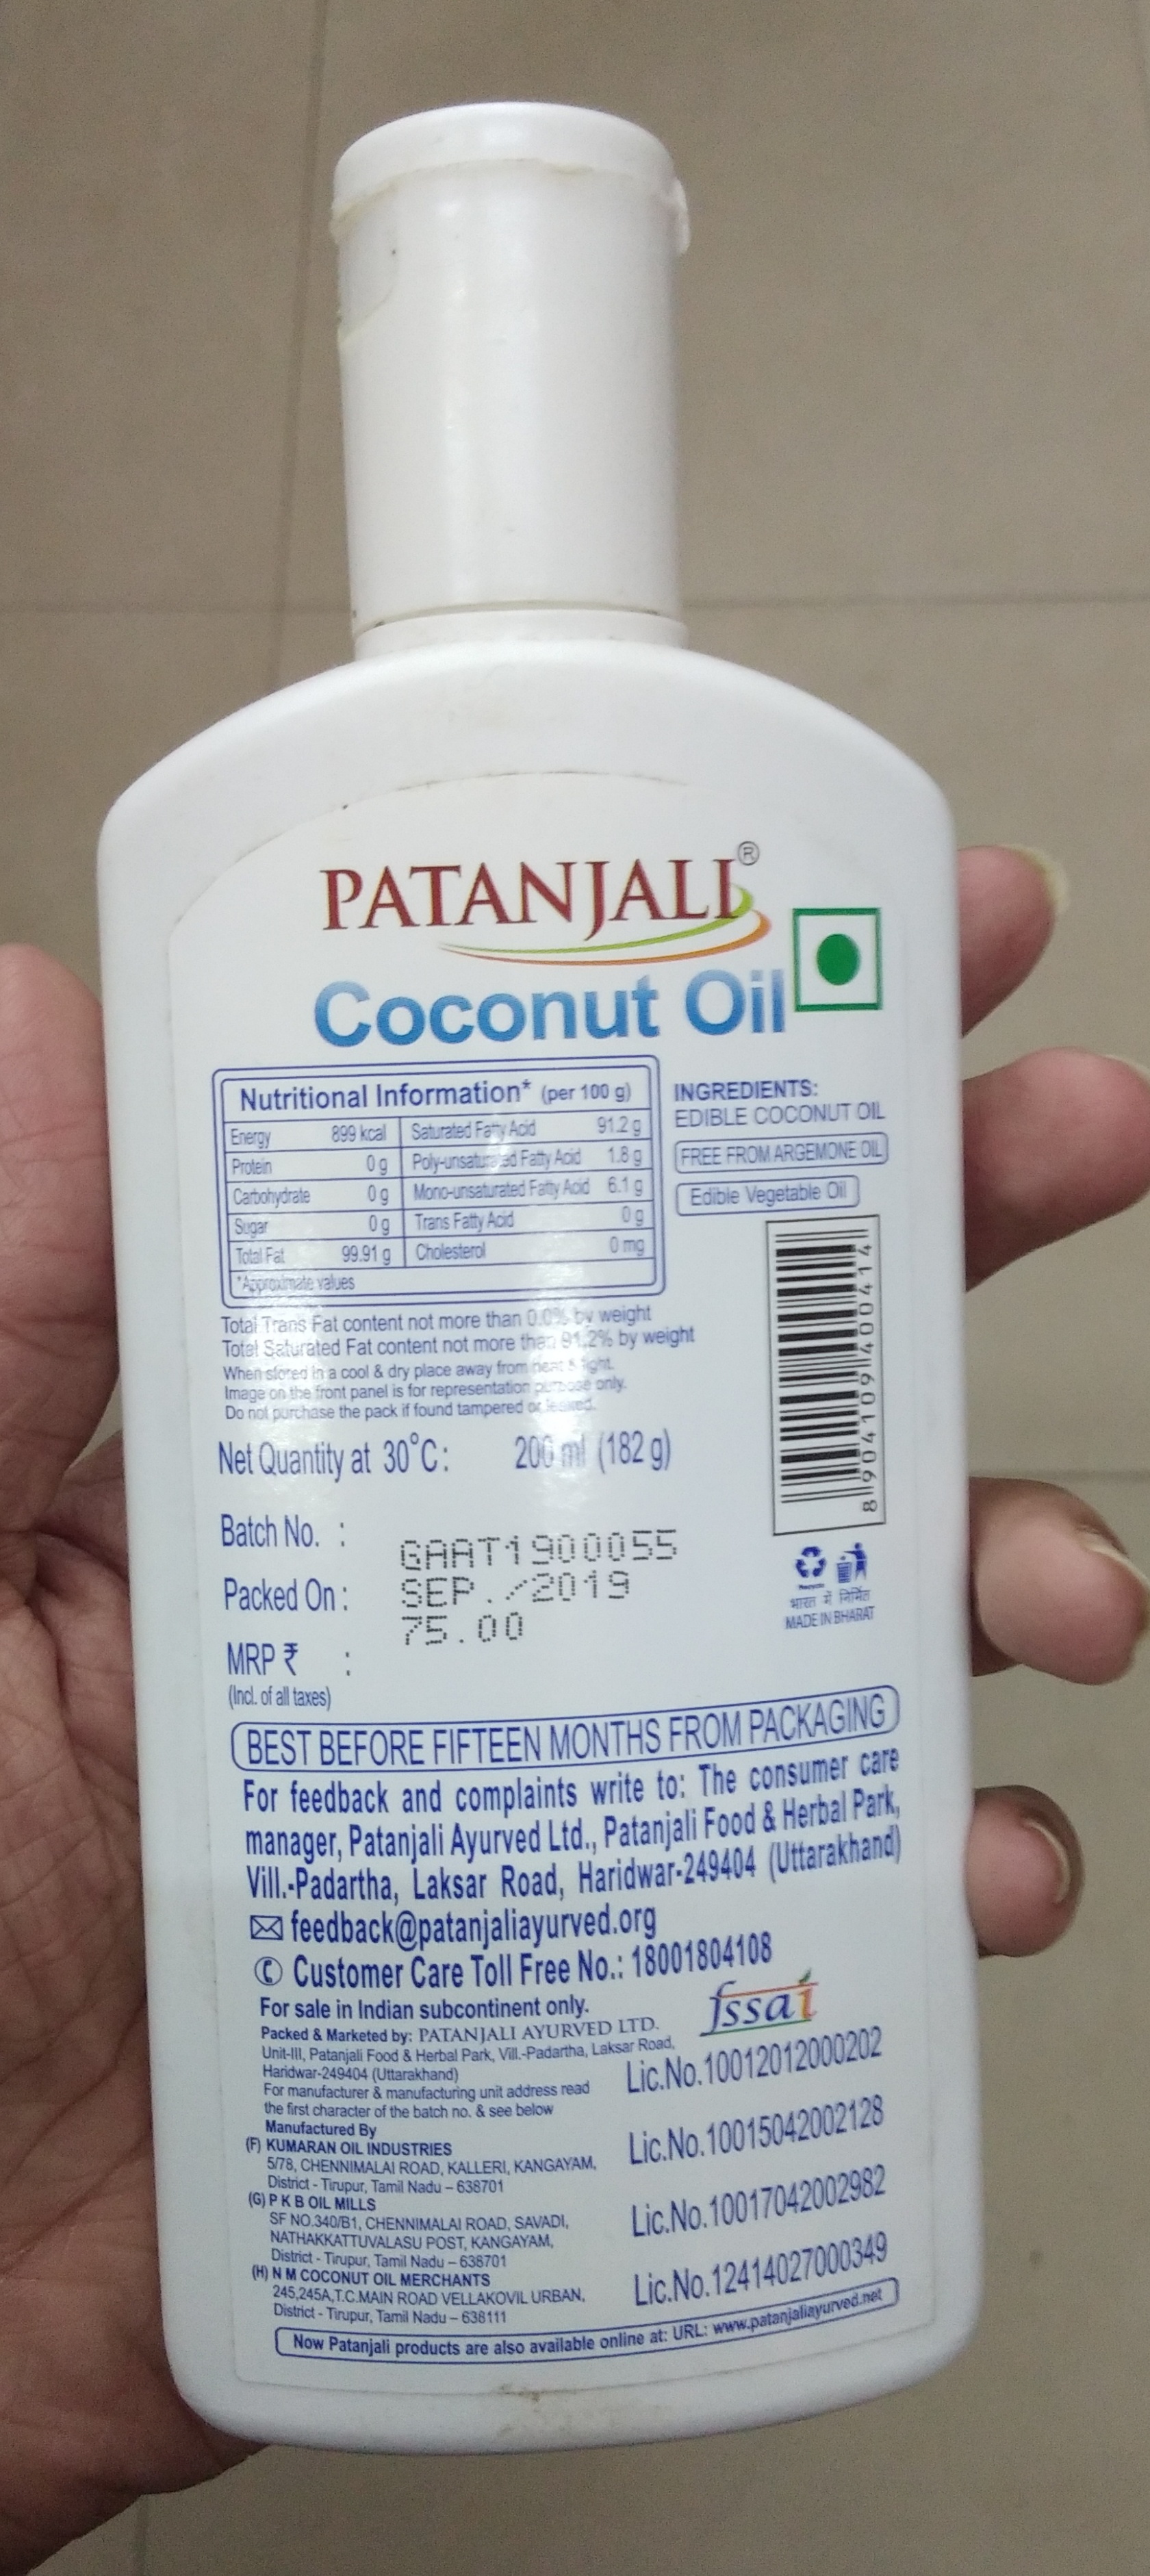 Patanjali Coconut Oil pic 2-Pretty good-By Nasreen